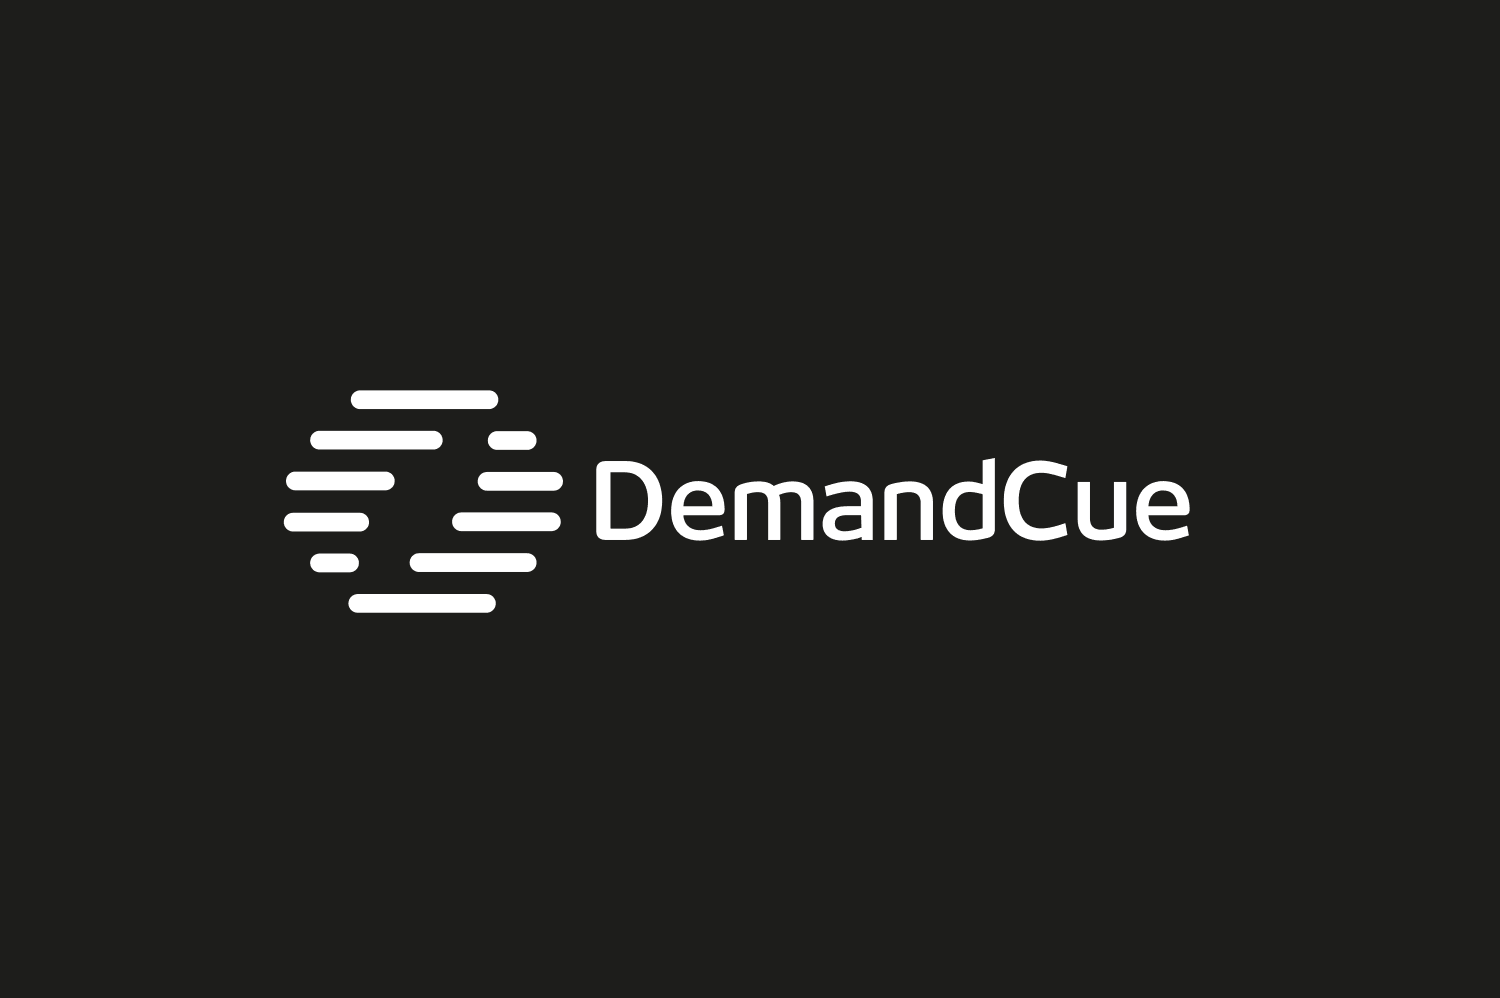 DemandCue logo design